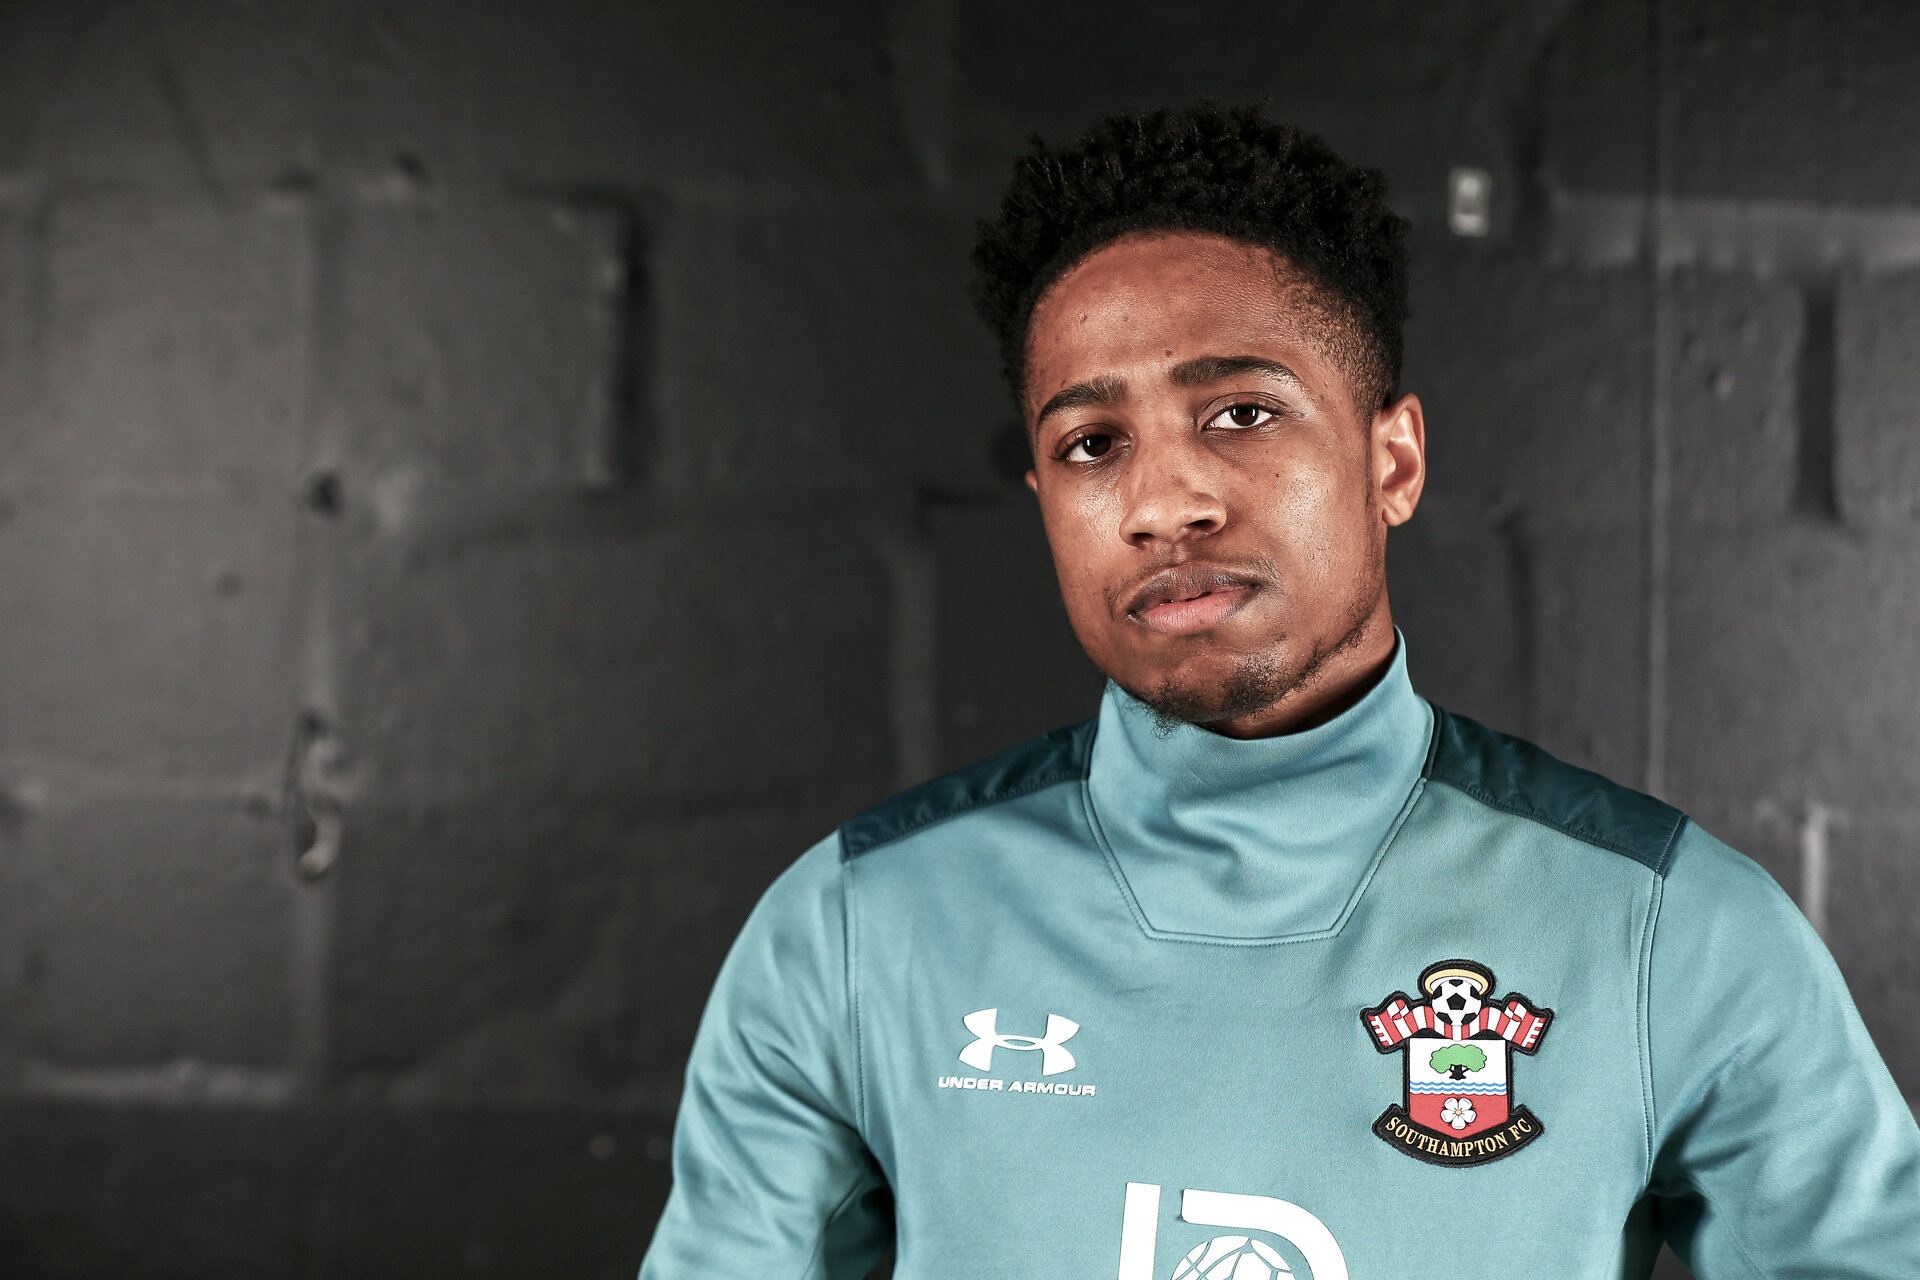 SOUTHAMPTON, ENGLAND - FEBRUARY 19: Kyle Walker-Peters pictured for Saints match day magazine at the Staplewood Campus, on February 19, 2020 in Southampton, England. (Photo by Matt Watson/Southampton FC via Getty Images)